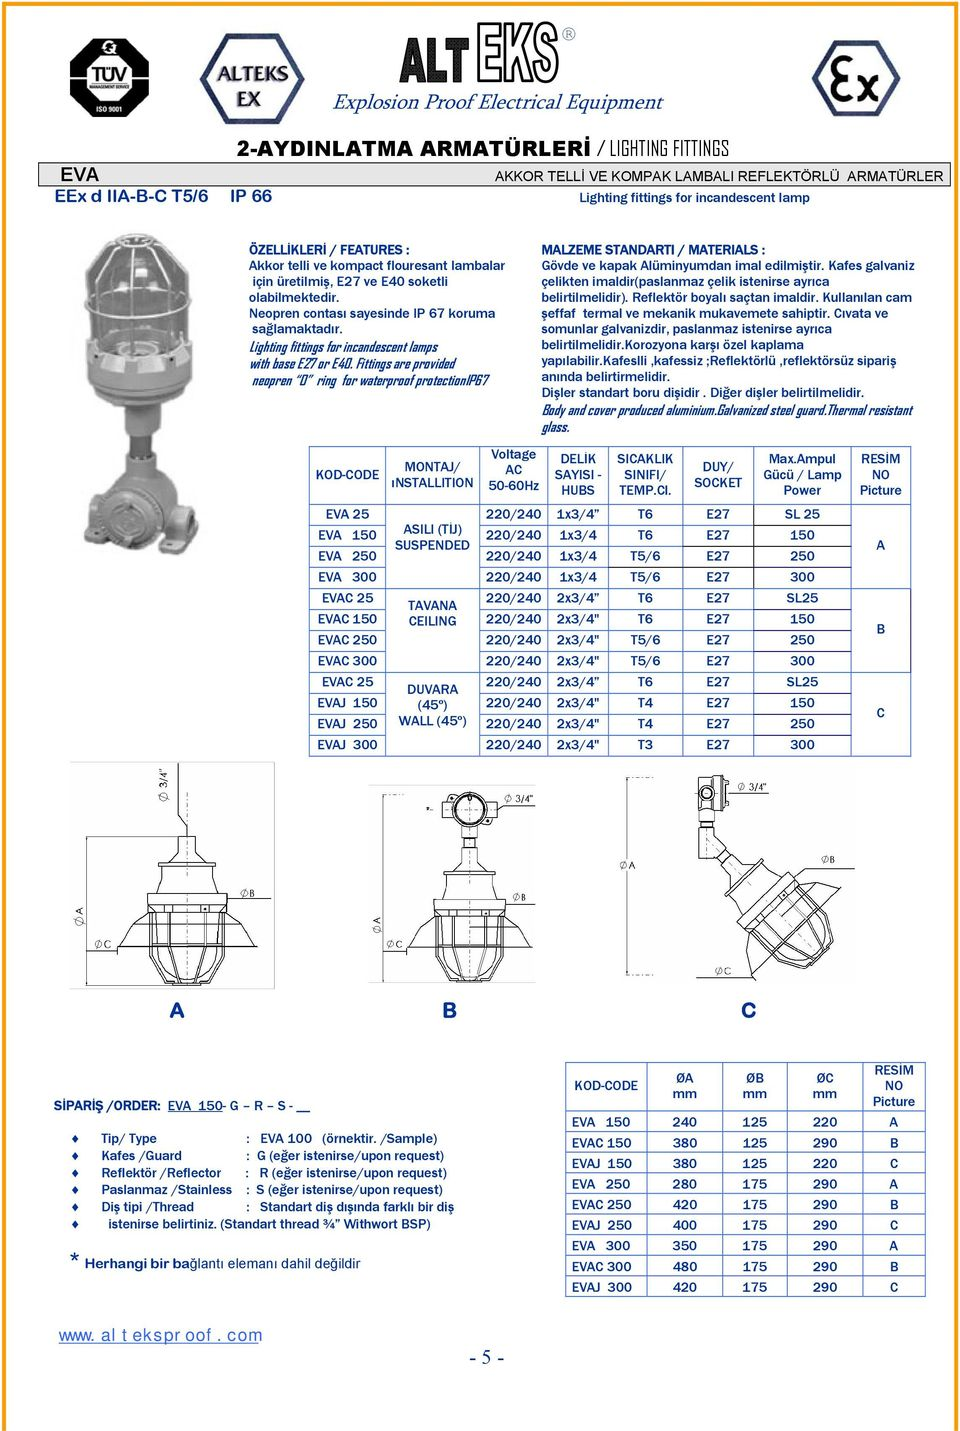 Lighting fittings for incandescent lamps with base E27 or E40.